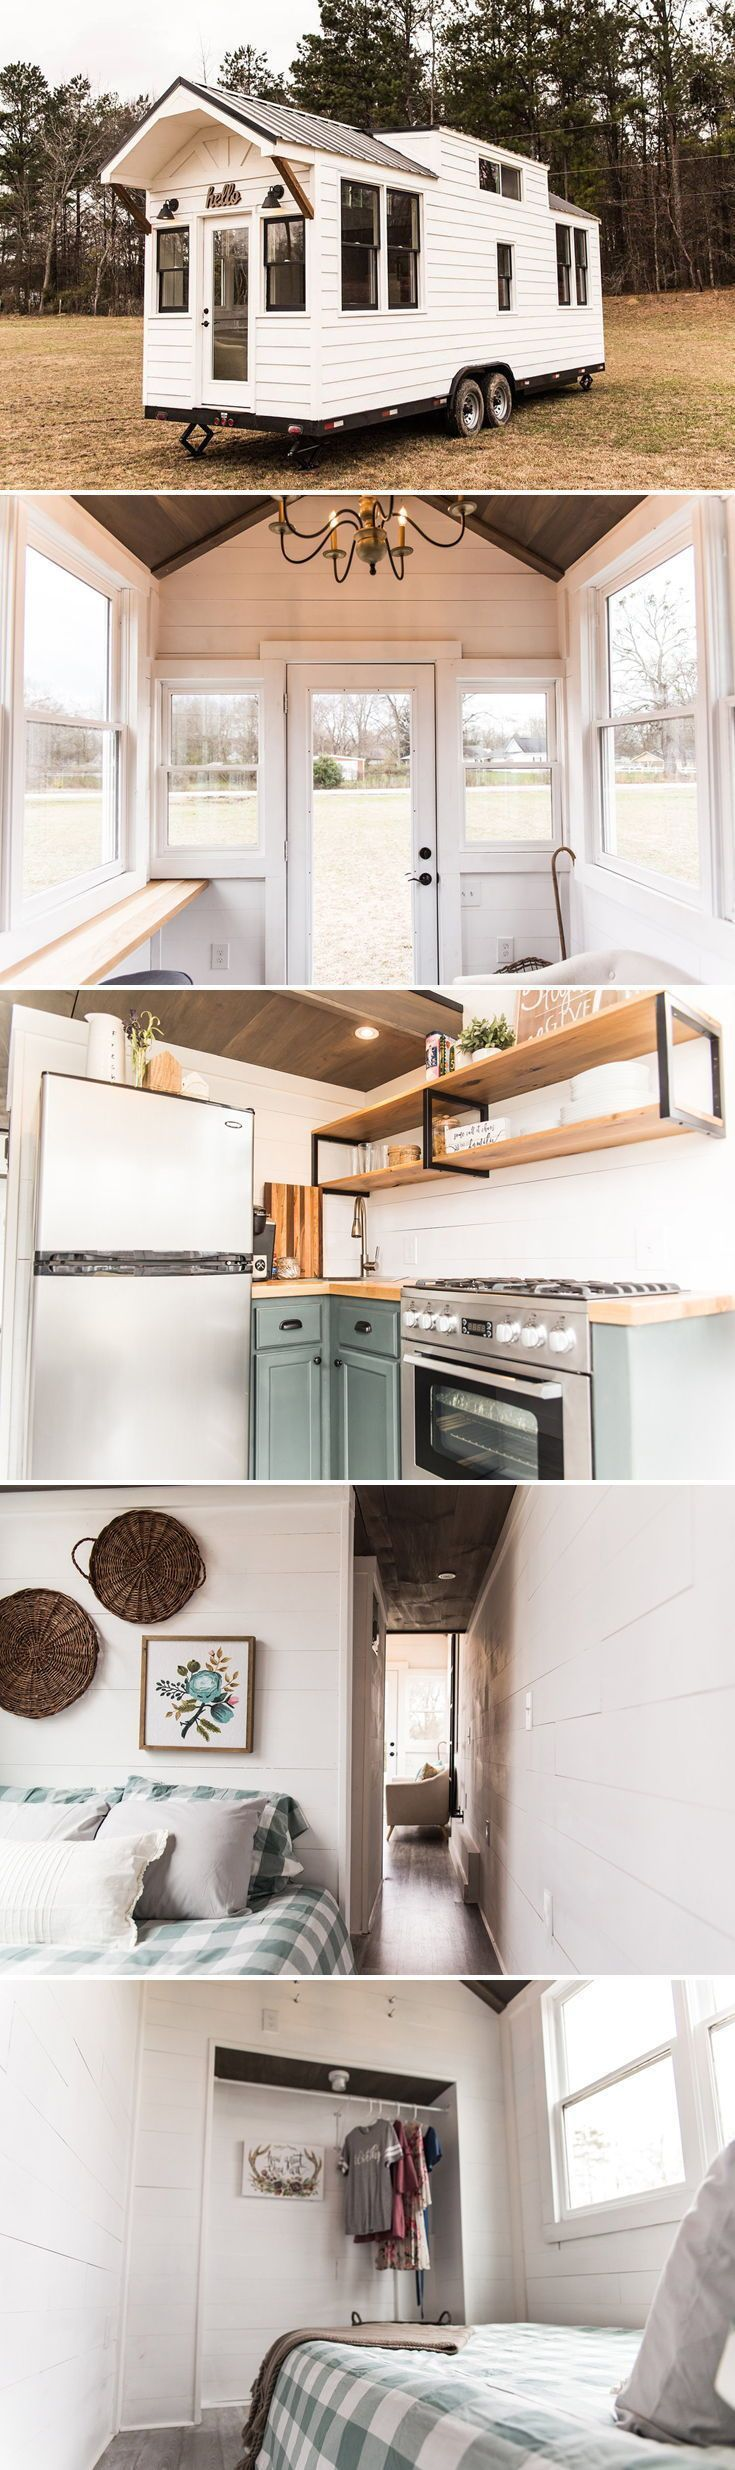 23 Best Tiny House Living #tinyhouses